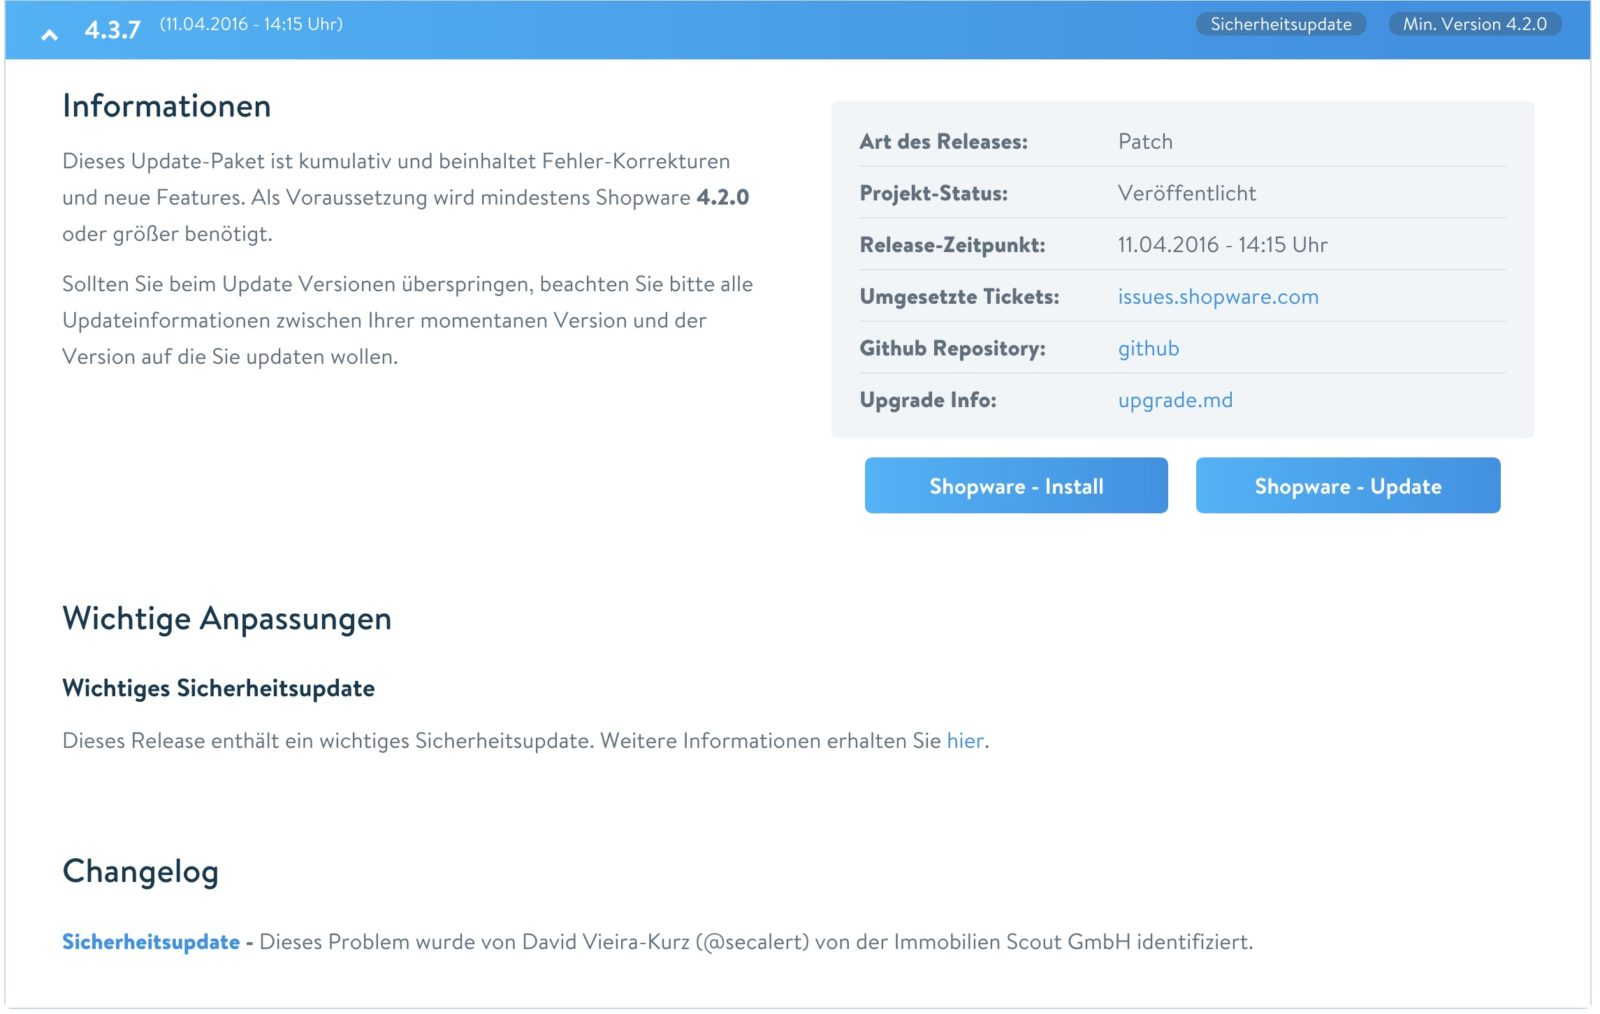 Shopware Update auf Shopware 5 - Updatepaket SW 4.3.7